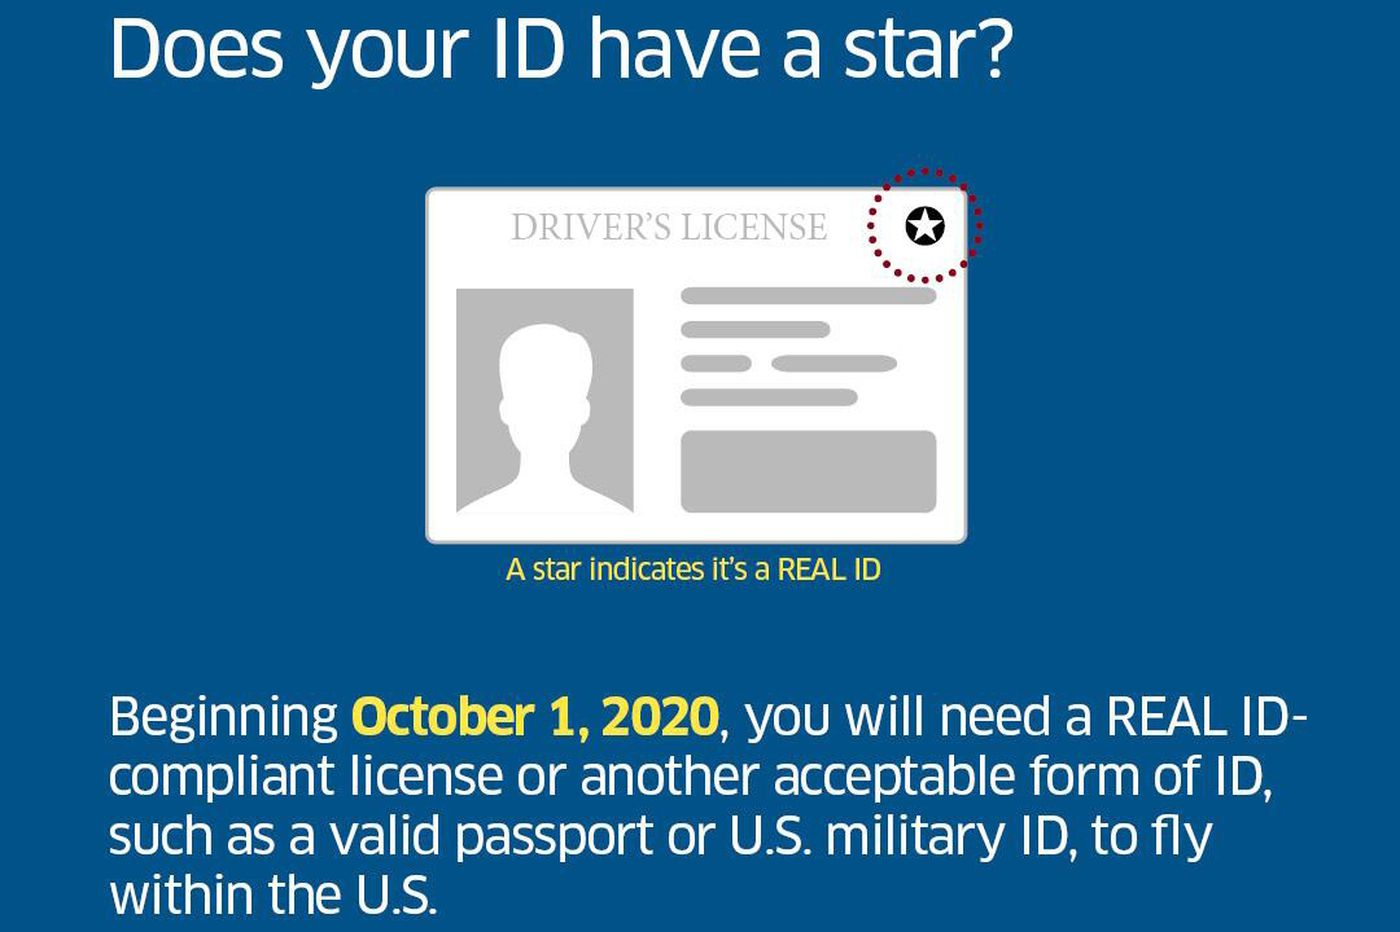 Americans' readiness for Real ID in doubt as 2020 deadline nears